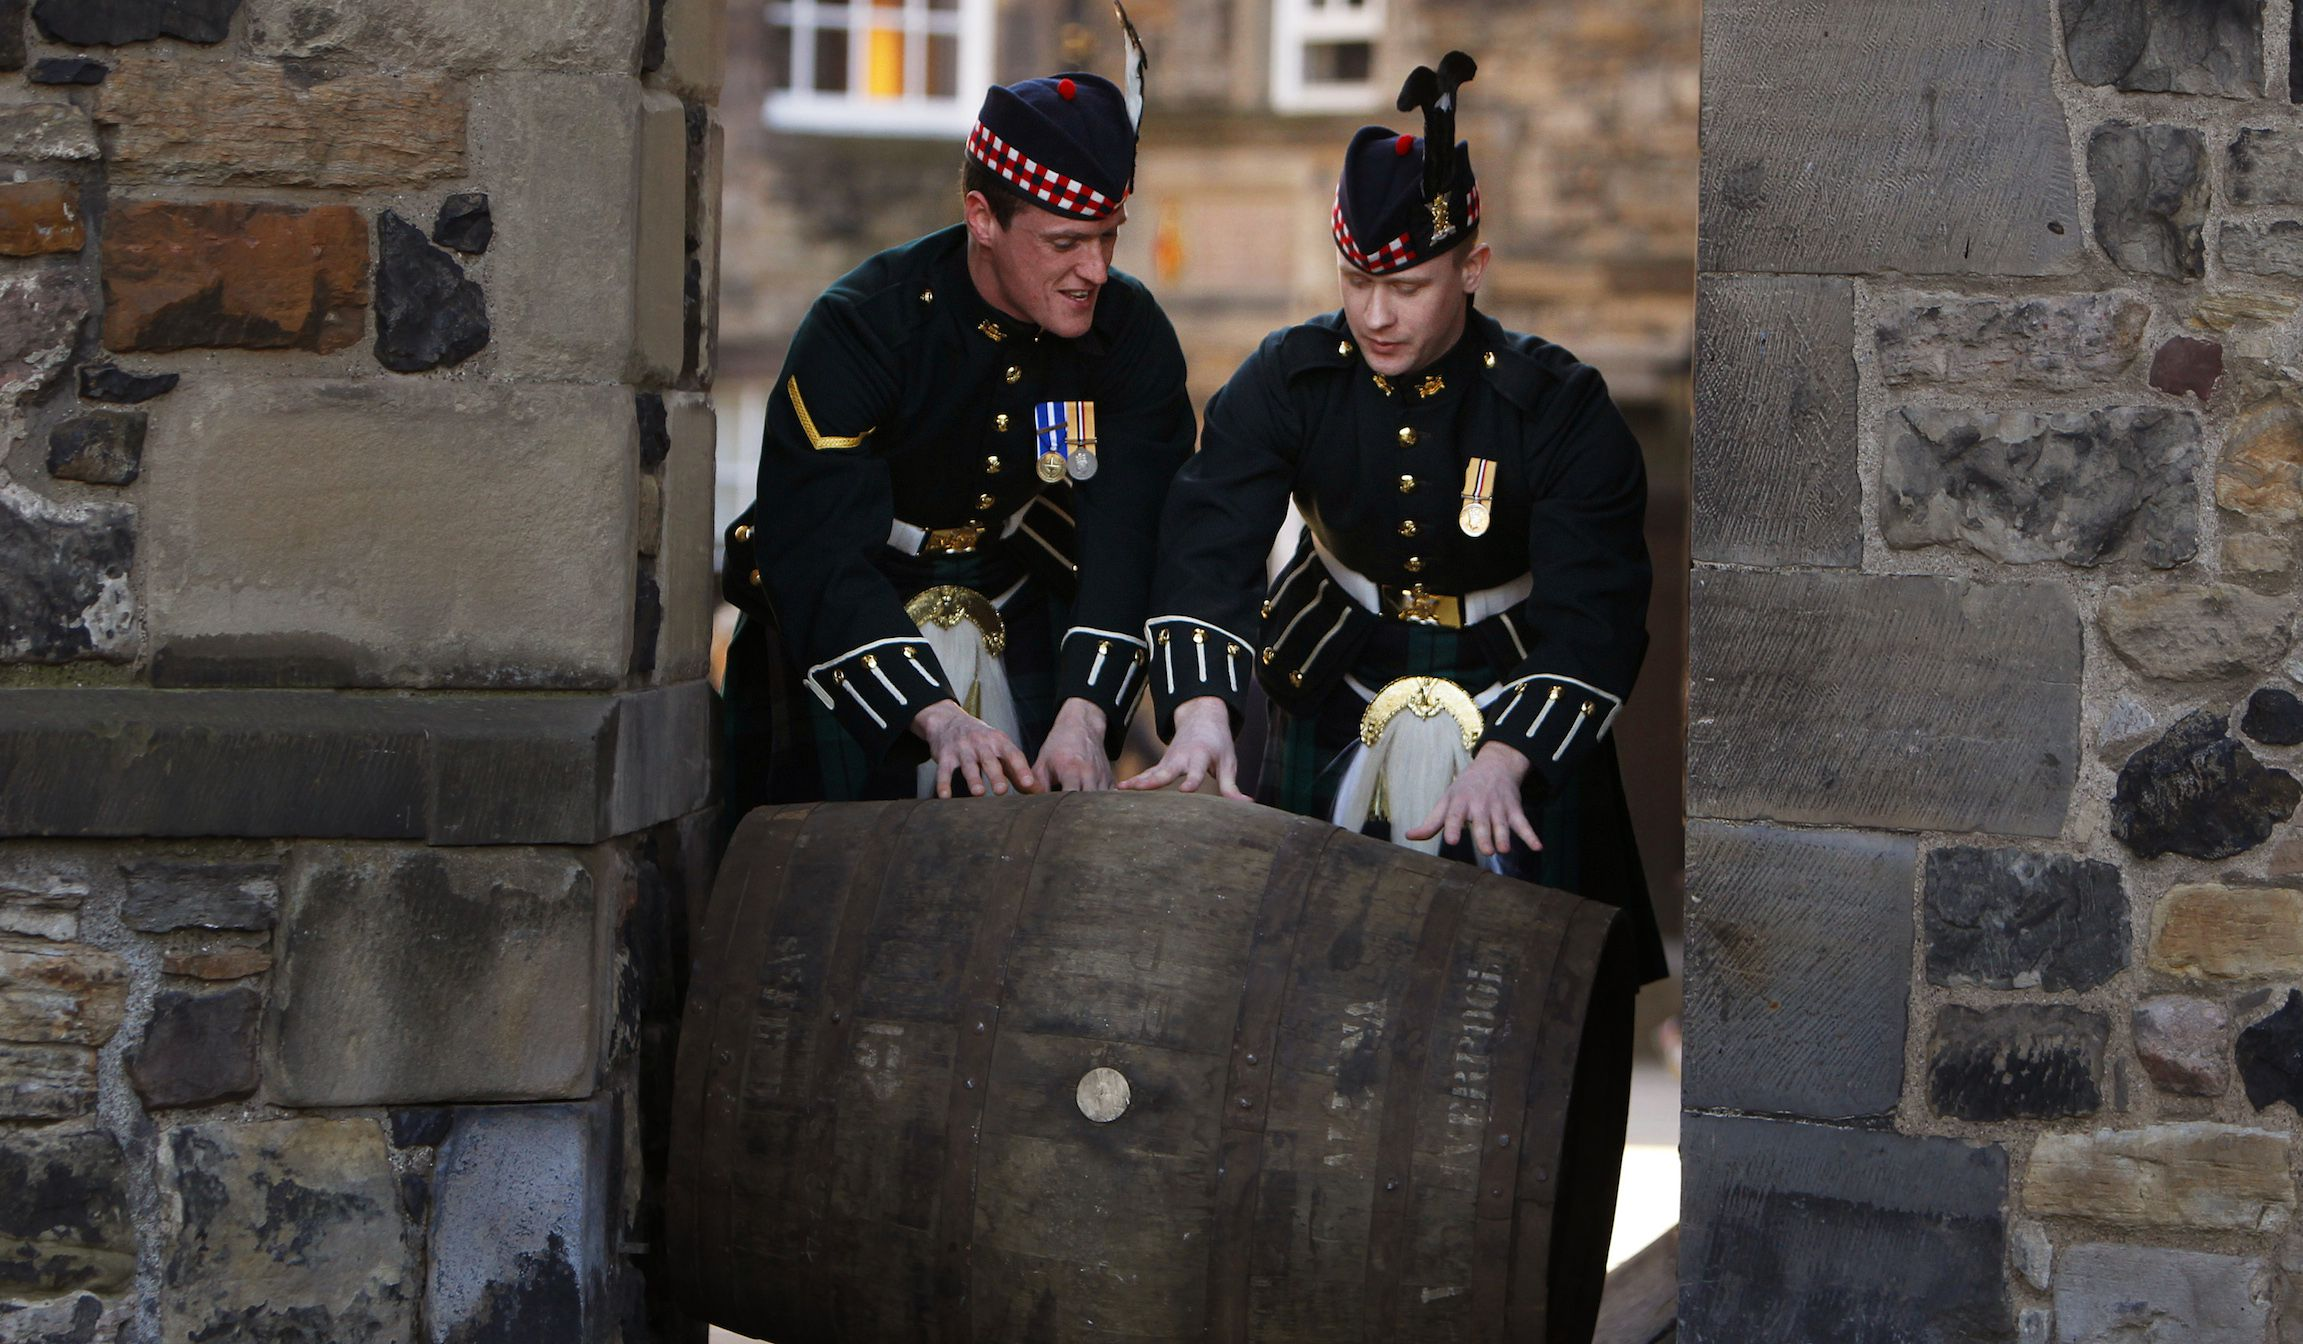 Lance Corpral Alan Leiper (L) and Private Kris Green push a wooden cask of Mortlach 70-year-old single malt whisky at Edinburgh castle in Scotland March 11, 2010. A 70cl bottle of the whisky, which is claimed to be the world's oldest single malt, sells for 10,000 pounds ($15,012) and the 20cl bottle sells for 2,500 pounds ($3753).  REUTERS/David Moir (BRITAIN - Tags: SOCIETY) - RTR2BIBI